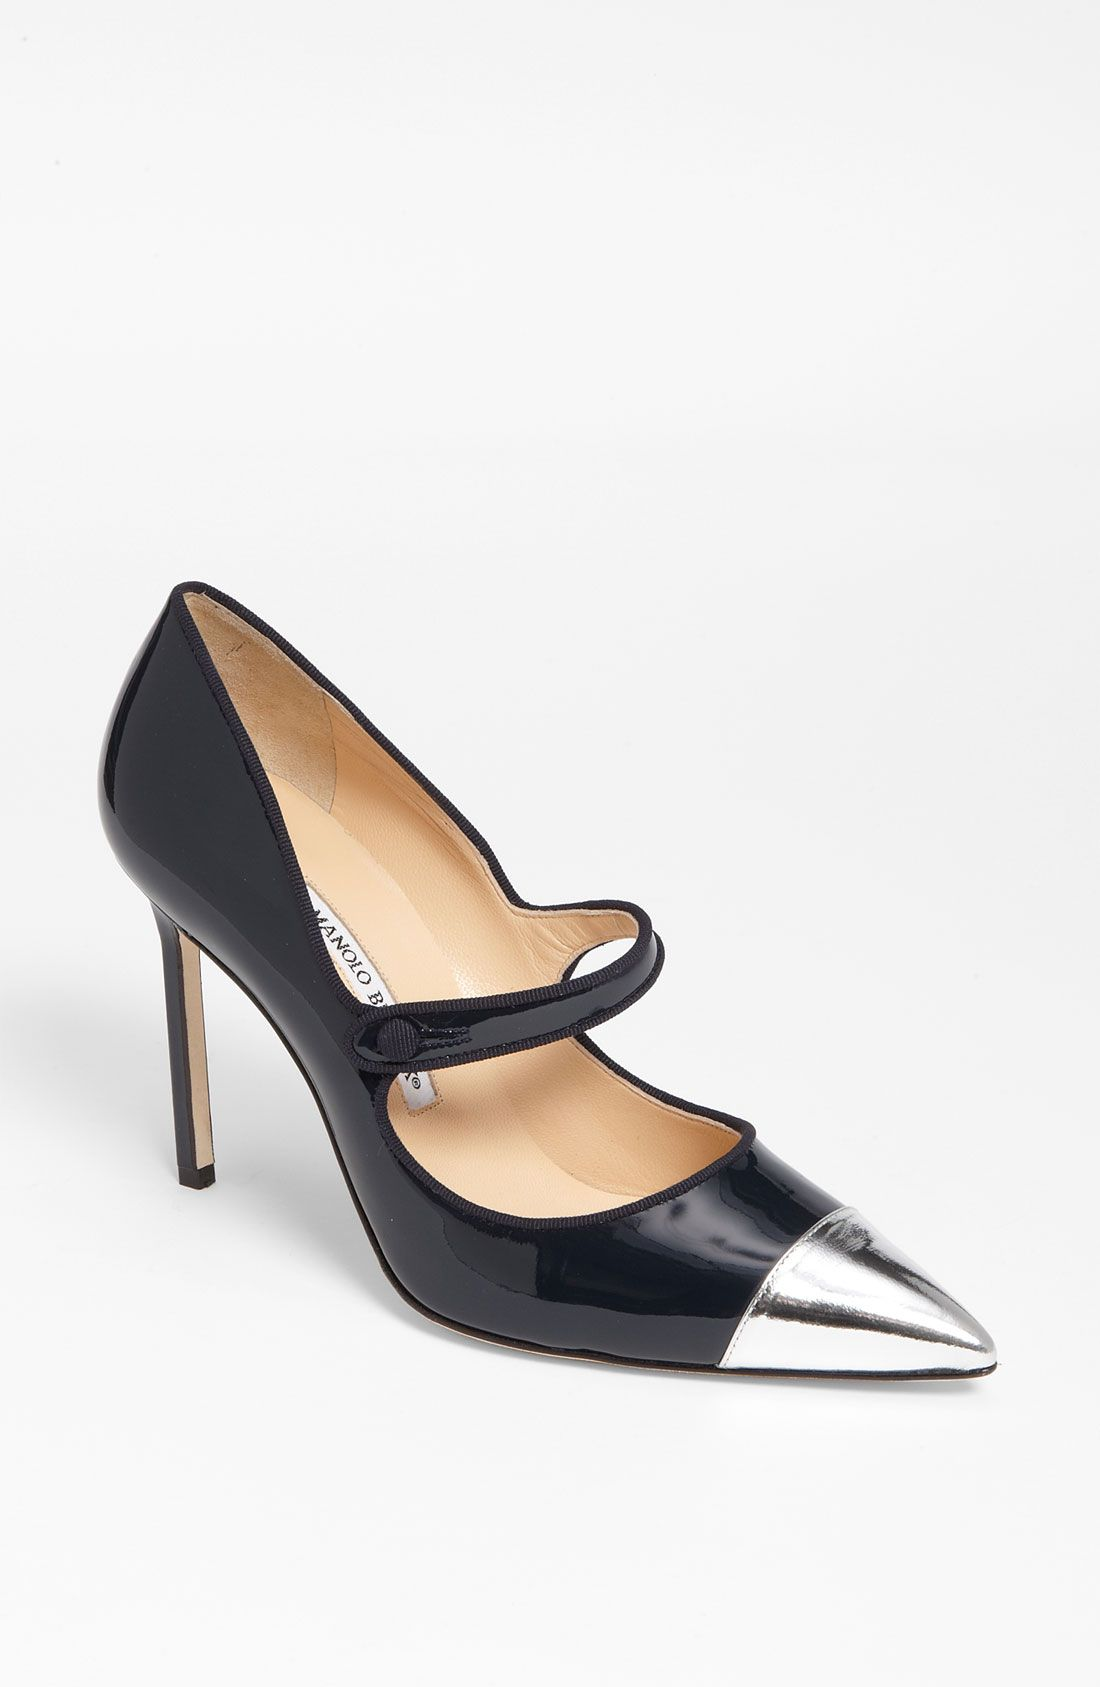 71cfdb355f32 Kamisco  Manolo Blahnik Pumps  Shoes and other trending products for sale  at competitive prices. Come on in!